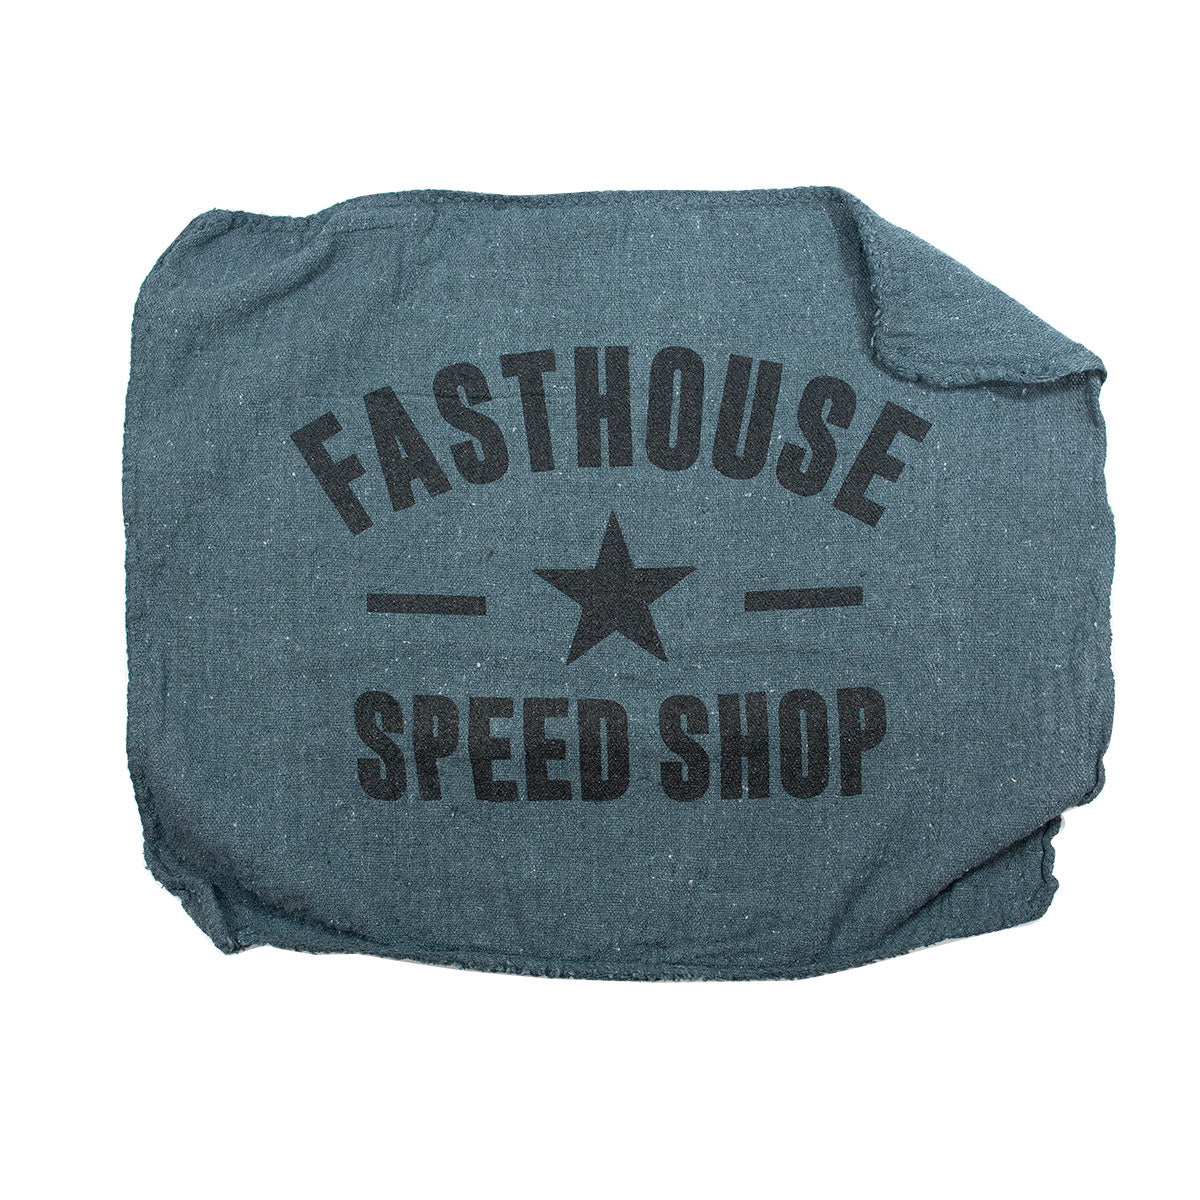 Fasthouse Shop Towel - Black